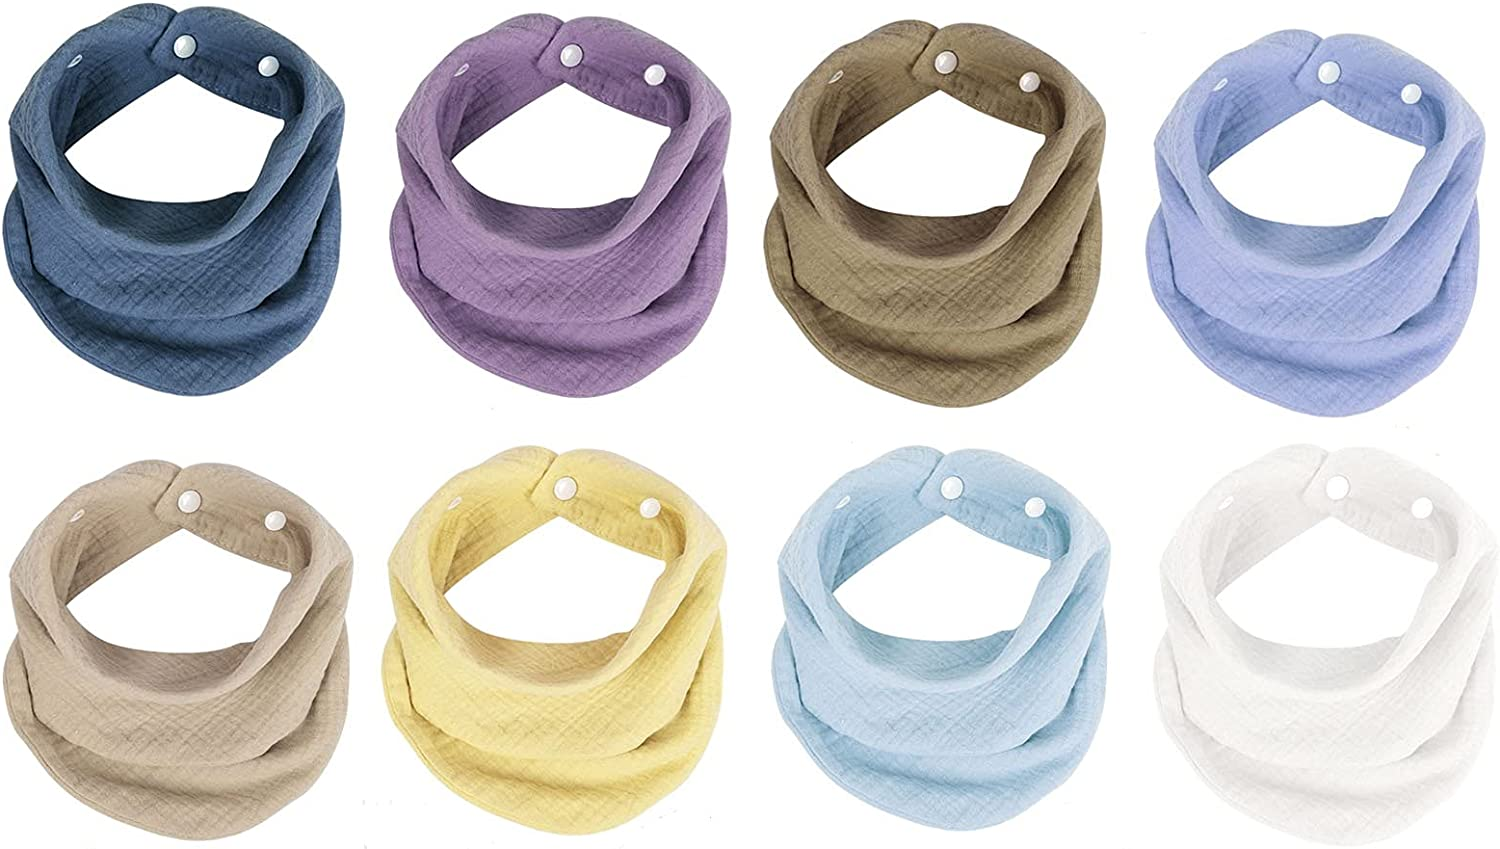 Max 81% OFF Muslin Bandana Bibs Clearance SALE! Limited time! 100% Organic Infant Absorb Scarf Soft